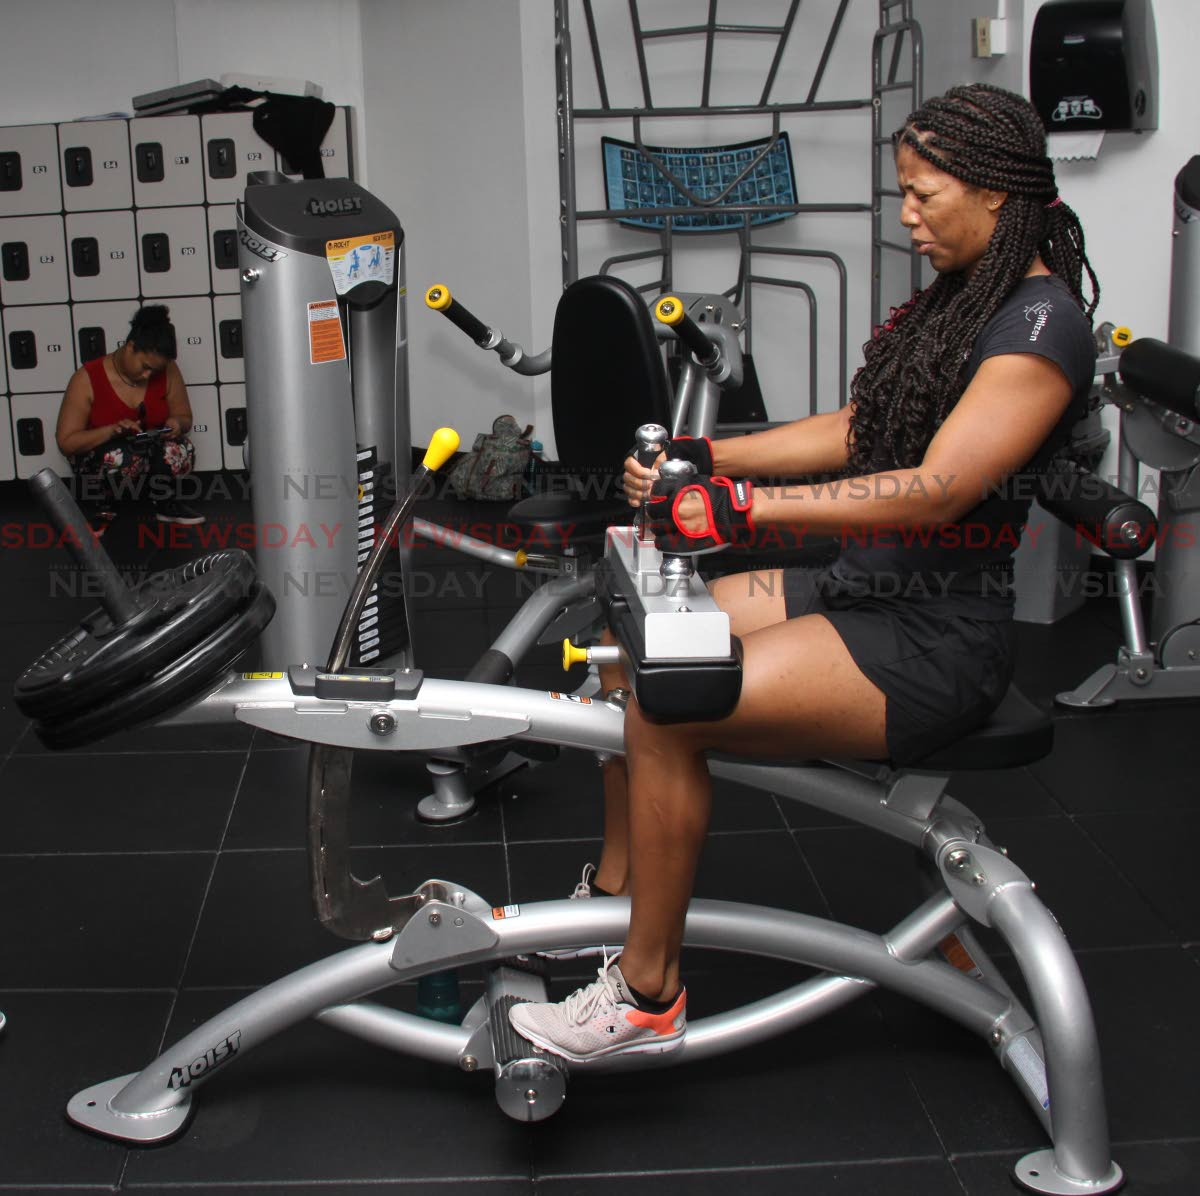 Sherainne Taylor feels the burn from this workout at D Dial Fitness Club, Long Circular Mall, St James.